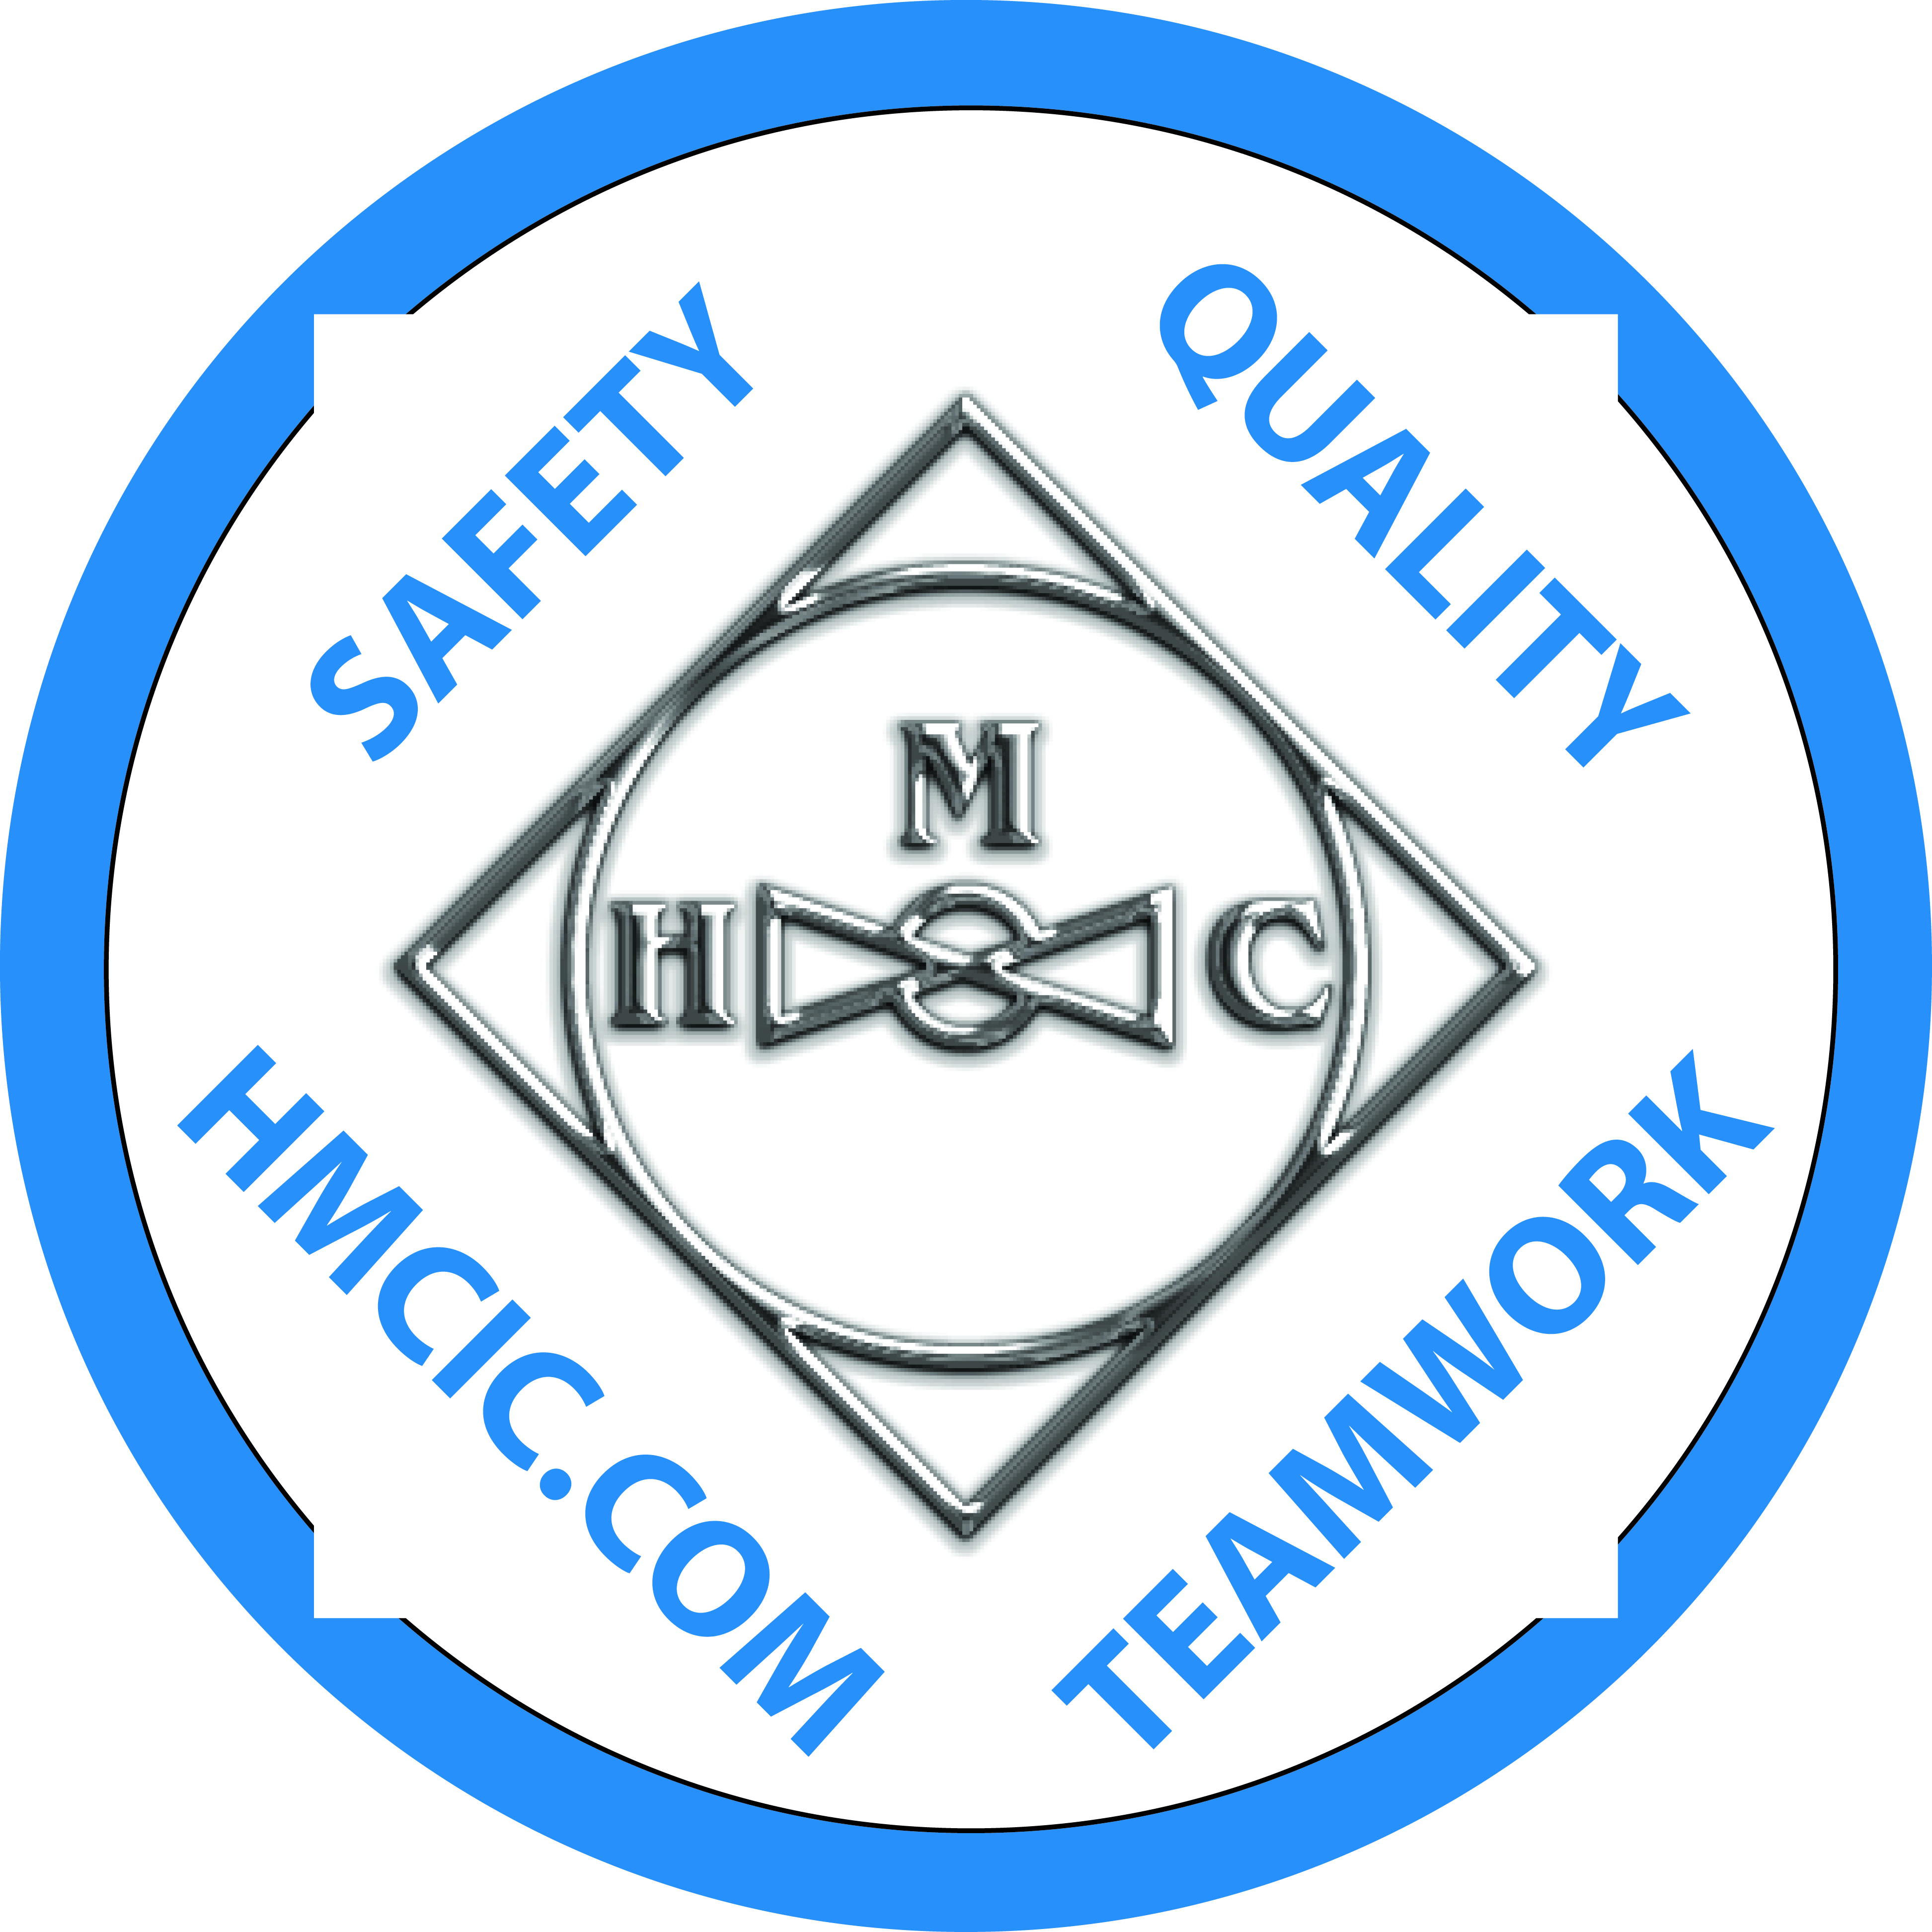 Safety Quality Teamwork